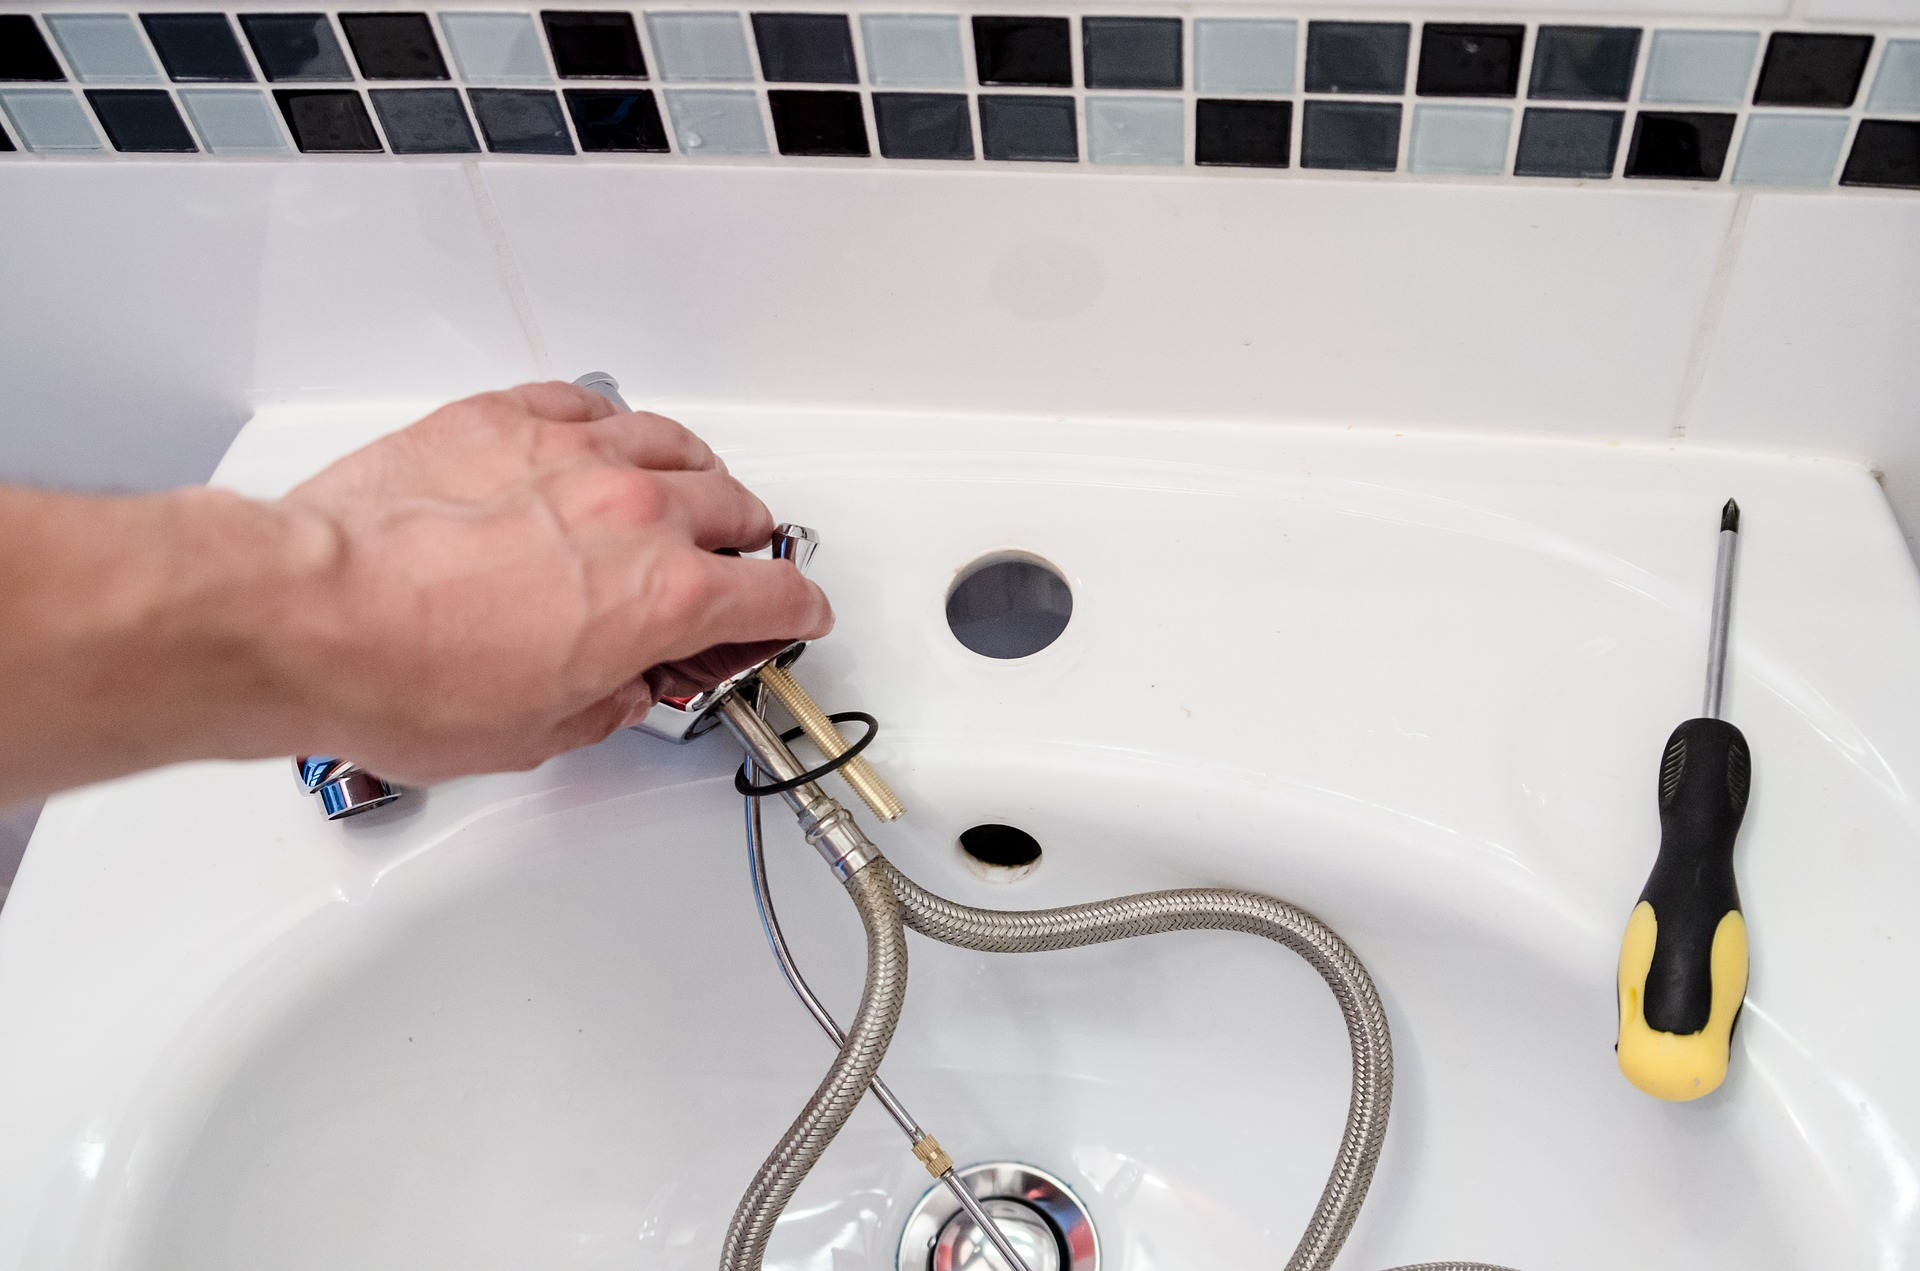 A white bathroom sink with the faucet taken out and a repair person's hands fixing the faucet and a yellow and black screwdriver on the One Stop Plumbing Faucets, Toilets & Sinks page